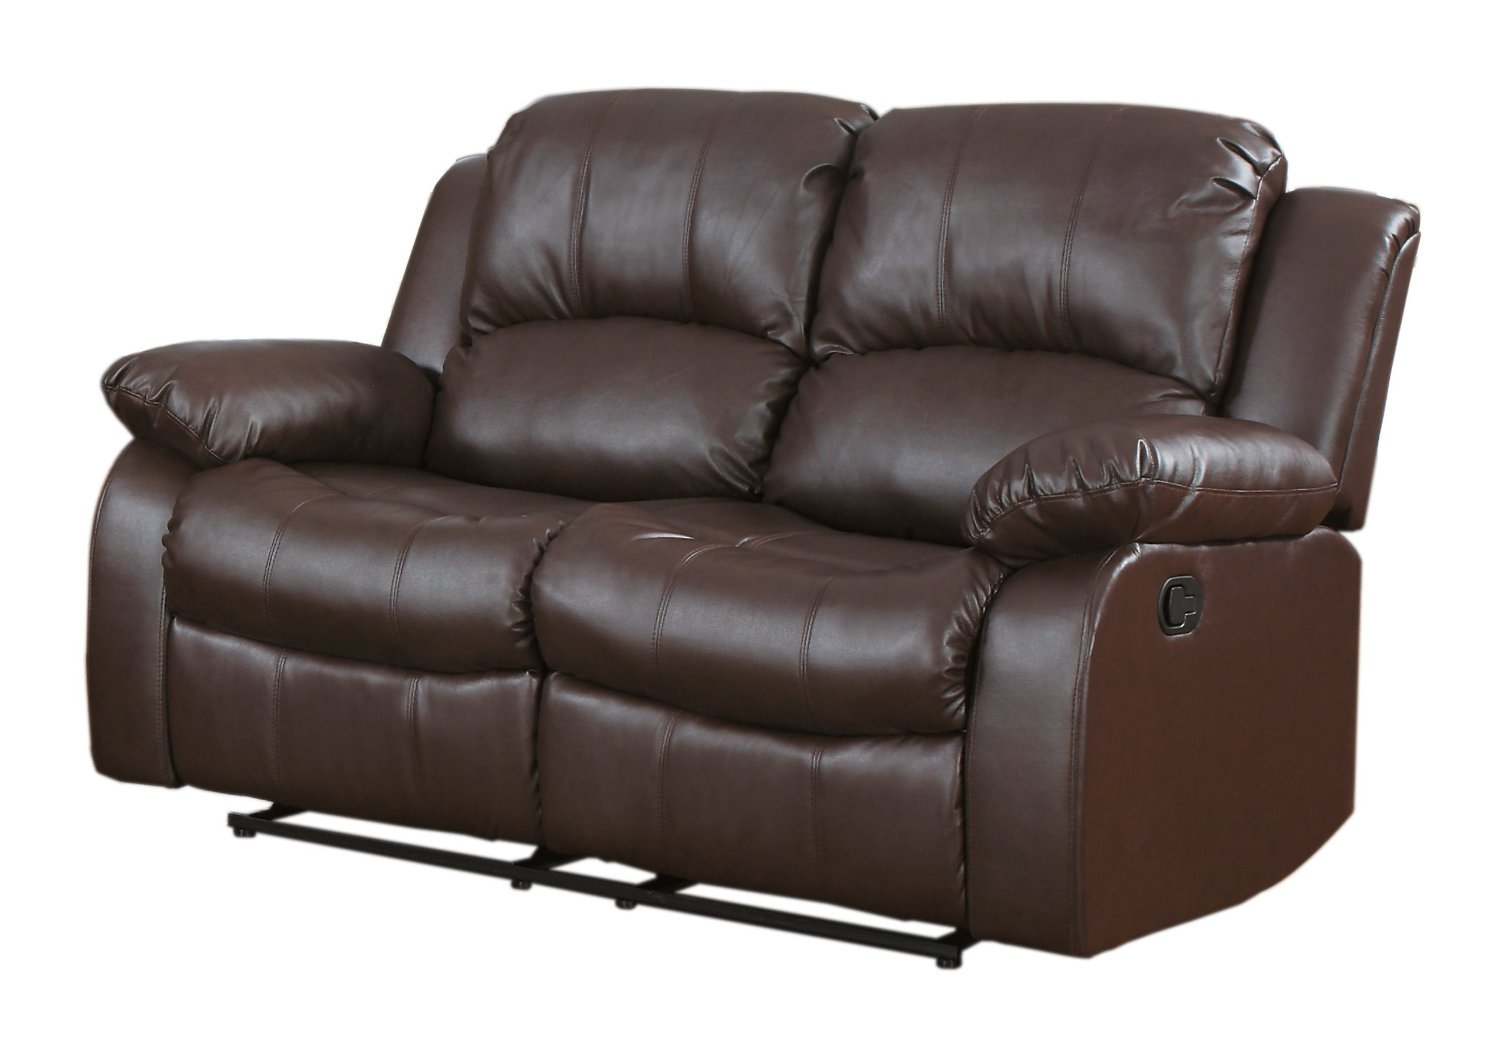 Finding the best power recliner loveseat in the marketplace best recliners Leather loveseat recliners